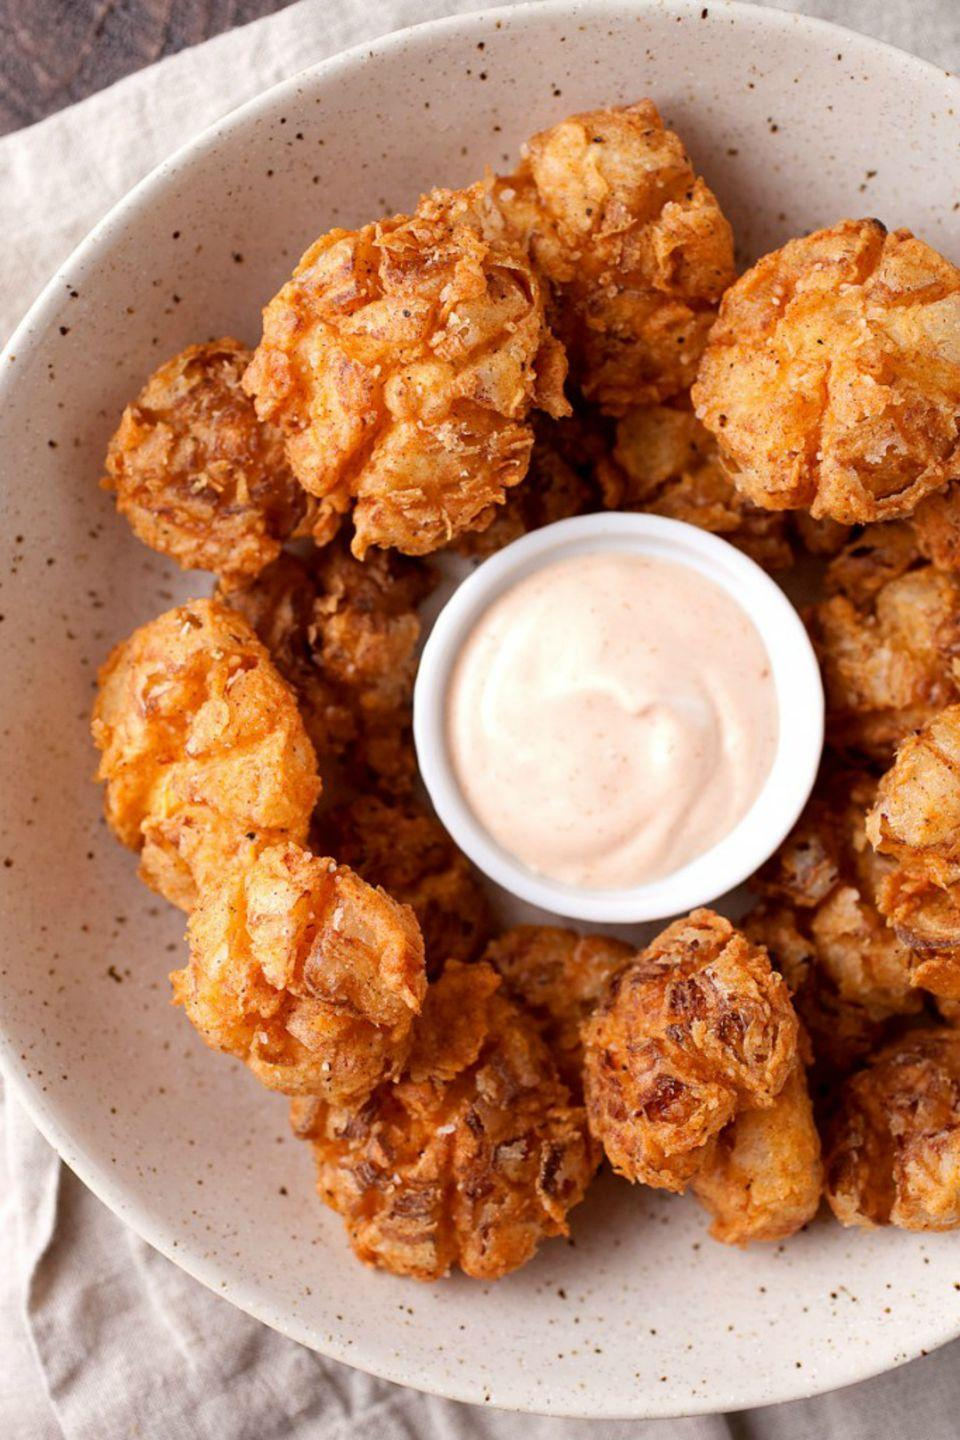 "<p>Battered in rich buttermilk, paprika, cayenne pepper,and garlic powder, these mini blooming onions are the perfect bite-sized party appetizer. </p><p><strong>Get the recipe at <a href=""http://www.macheesmo.com/bite-sized-blooming-onions/"" rel=""nofollow noopener"" target=""_blank"" data-ylk=""slk:Macheesmo"" class=""link rapid-noclick-resp"">Macheesmo</a>.</strong></p>"